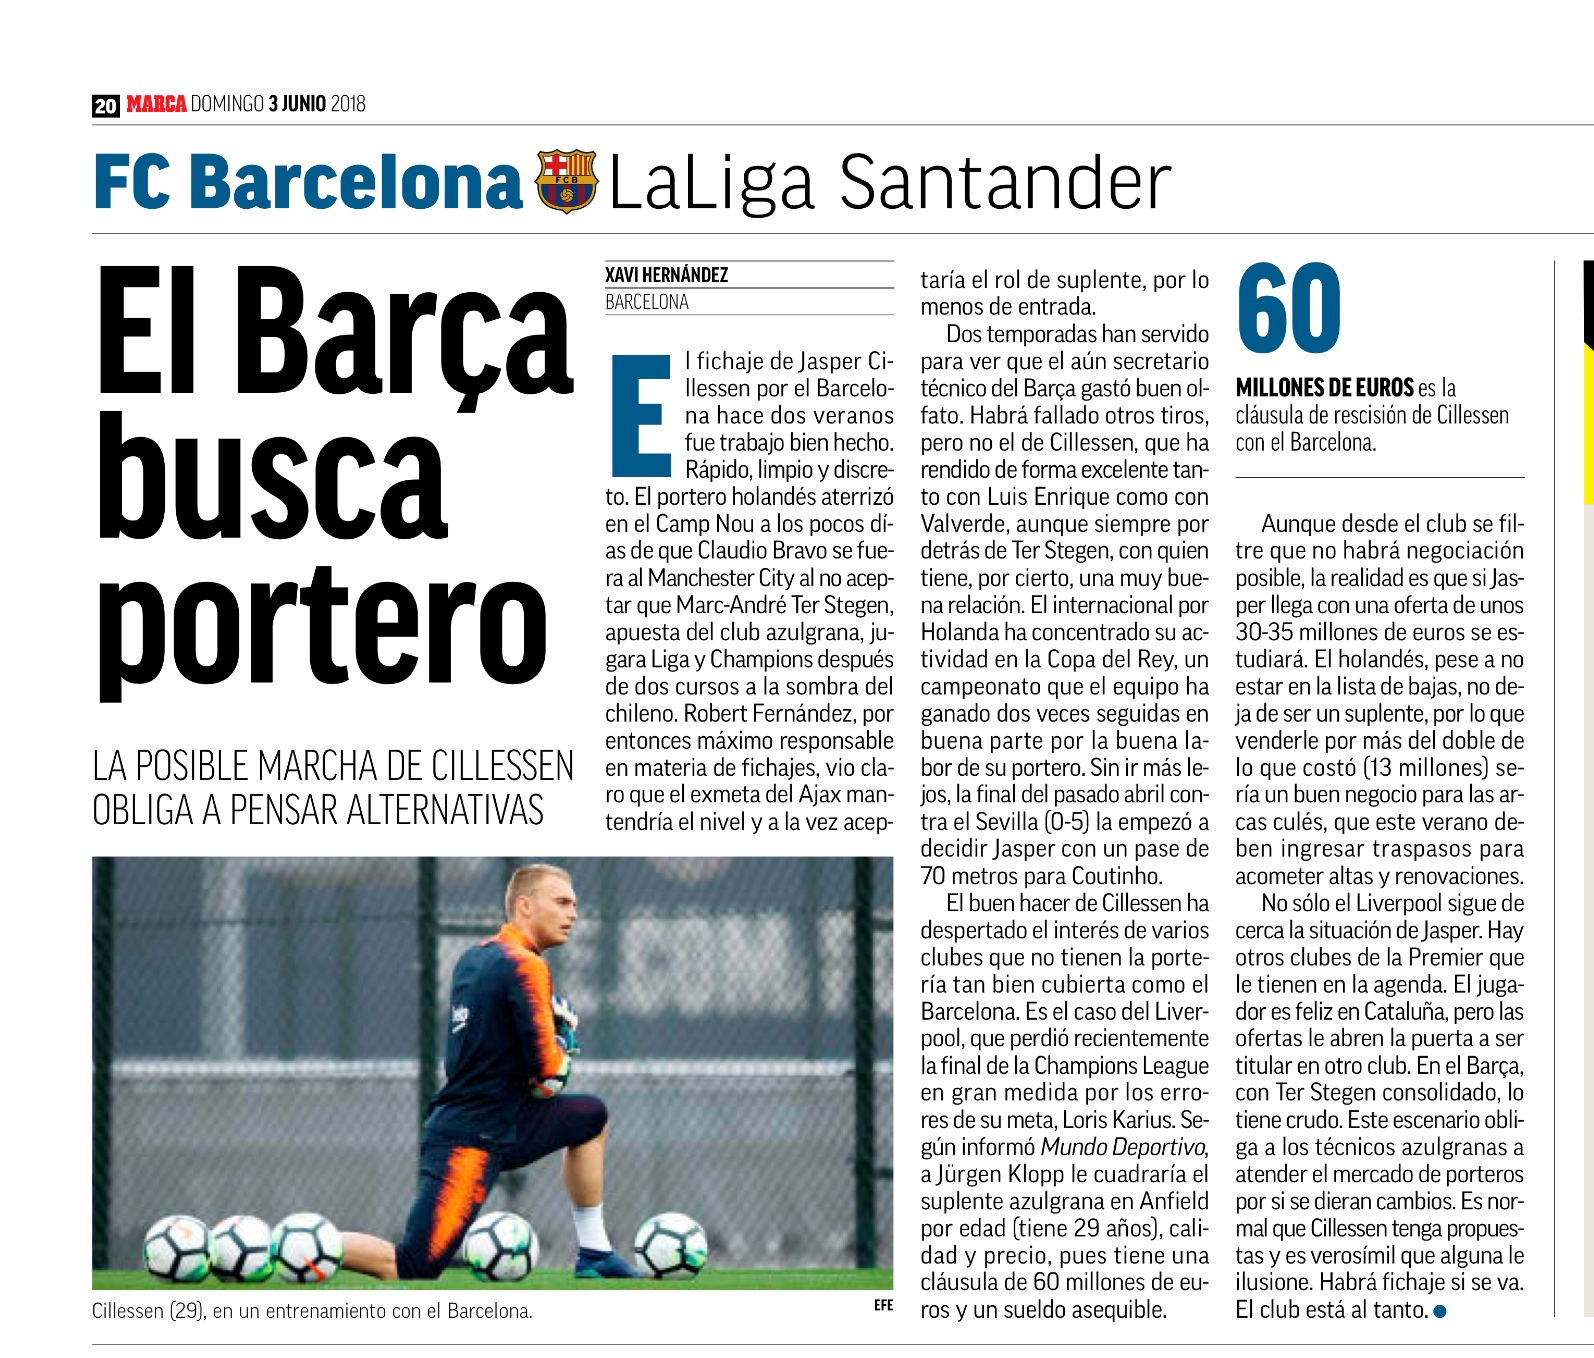 Arsenal and Chelsea join the race for Jasper Cillessen